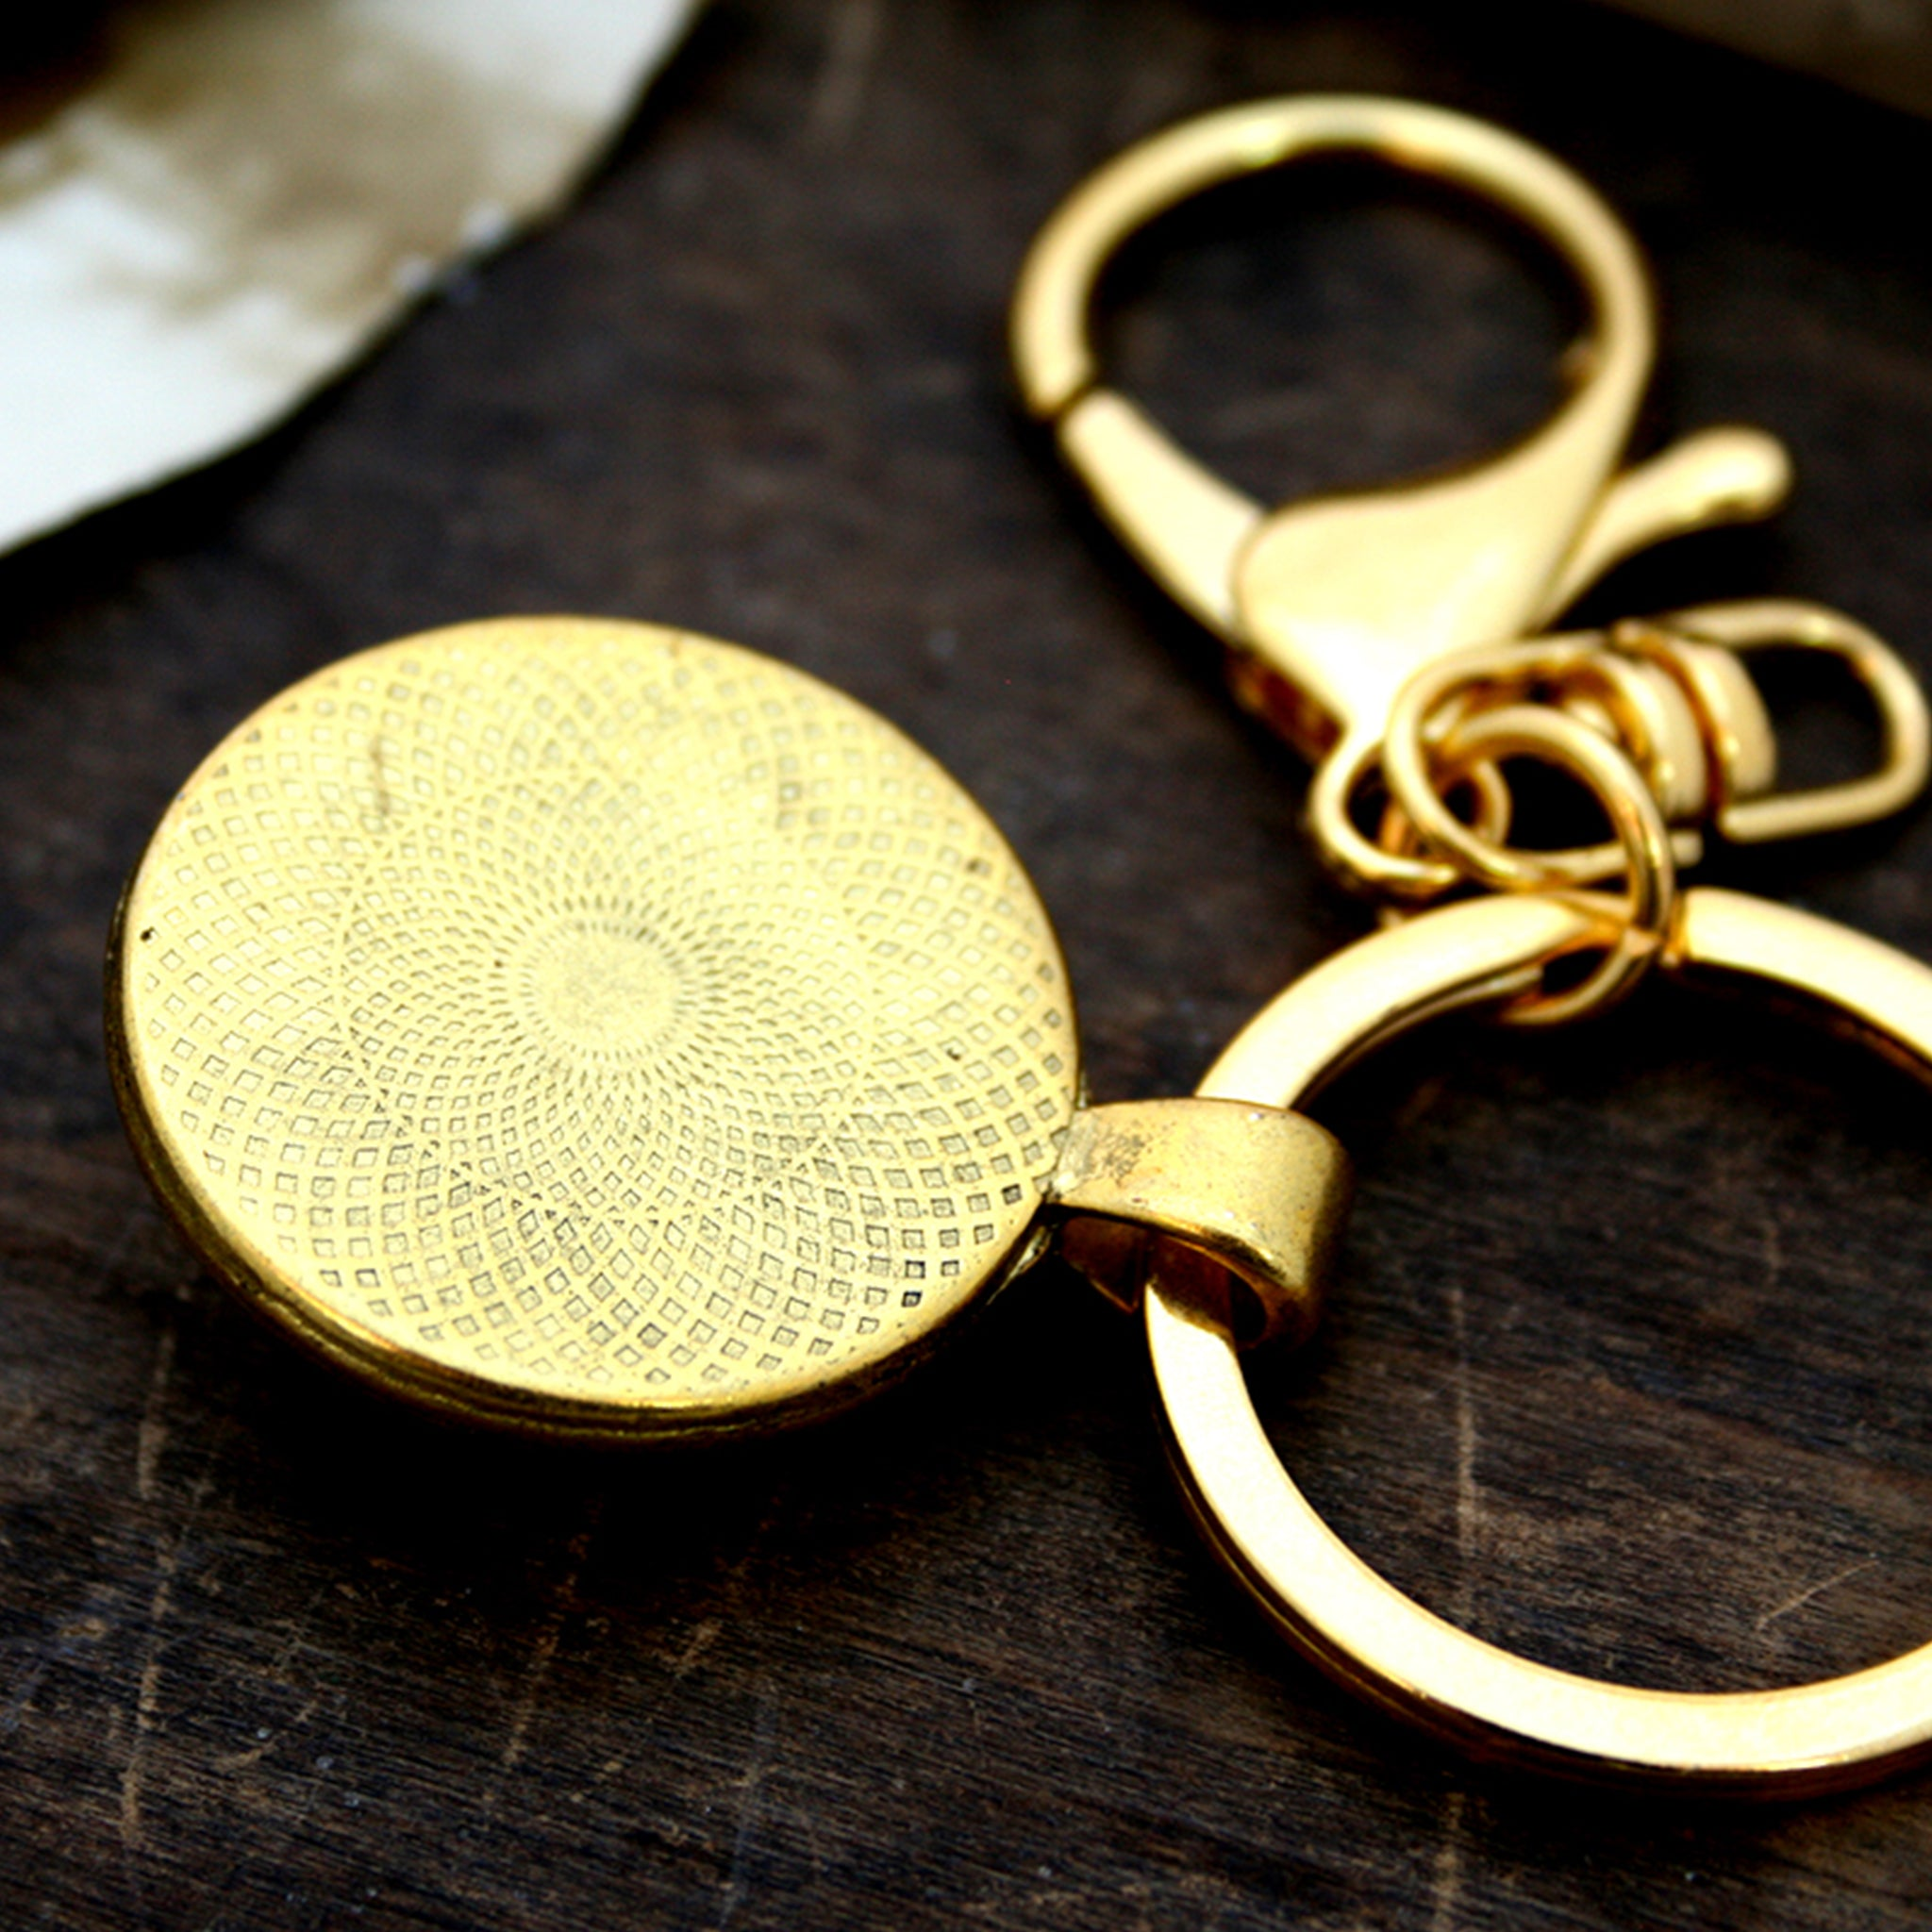 Personalised keyring in gold color